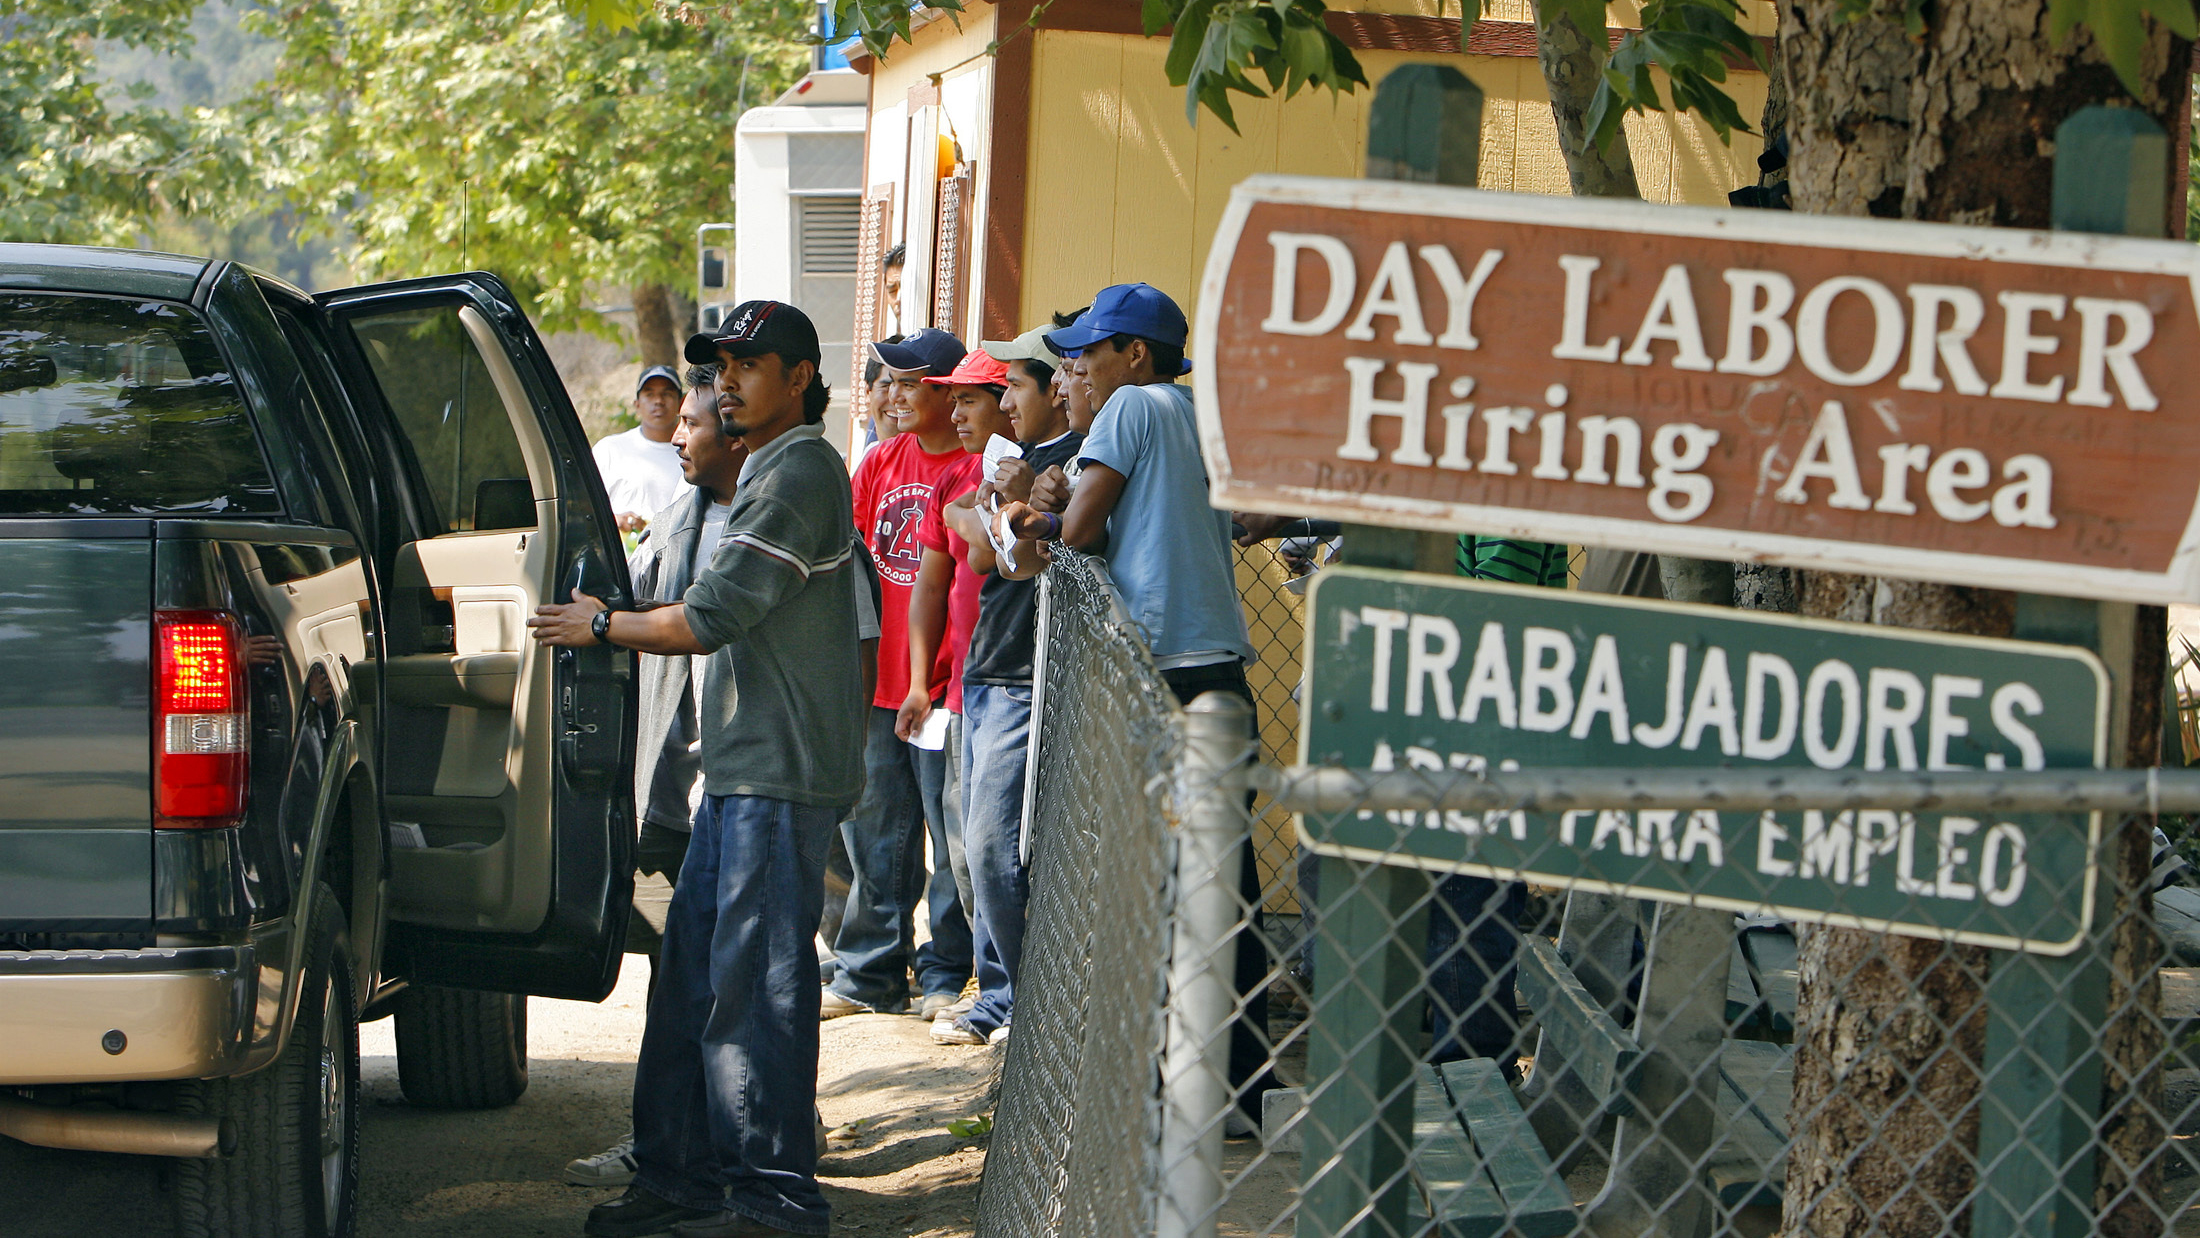 Day laborers enter a truck after being chosen by an employer at a hiring area in Laguna Beach, California